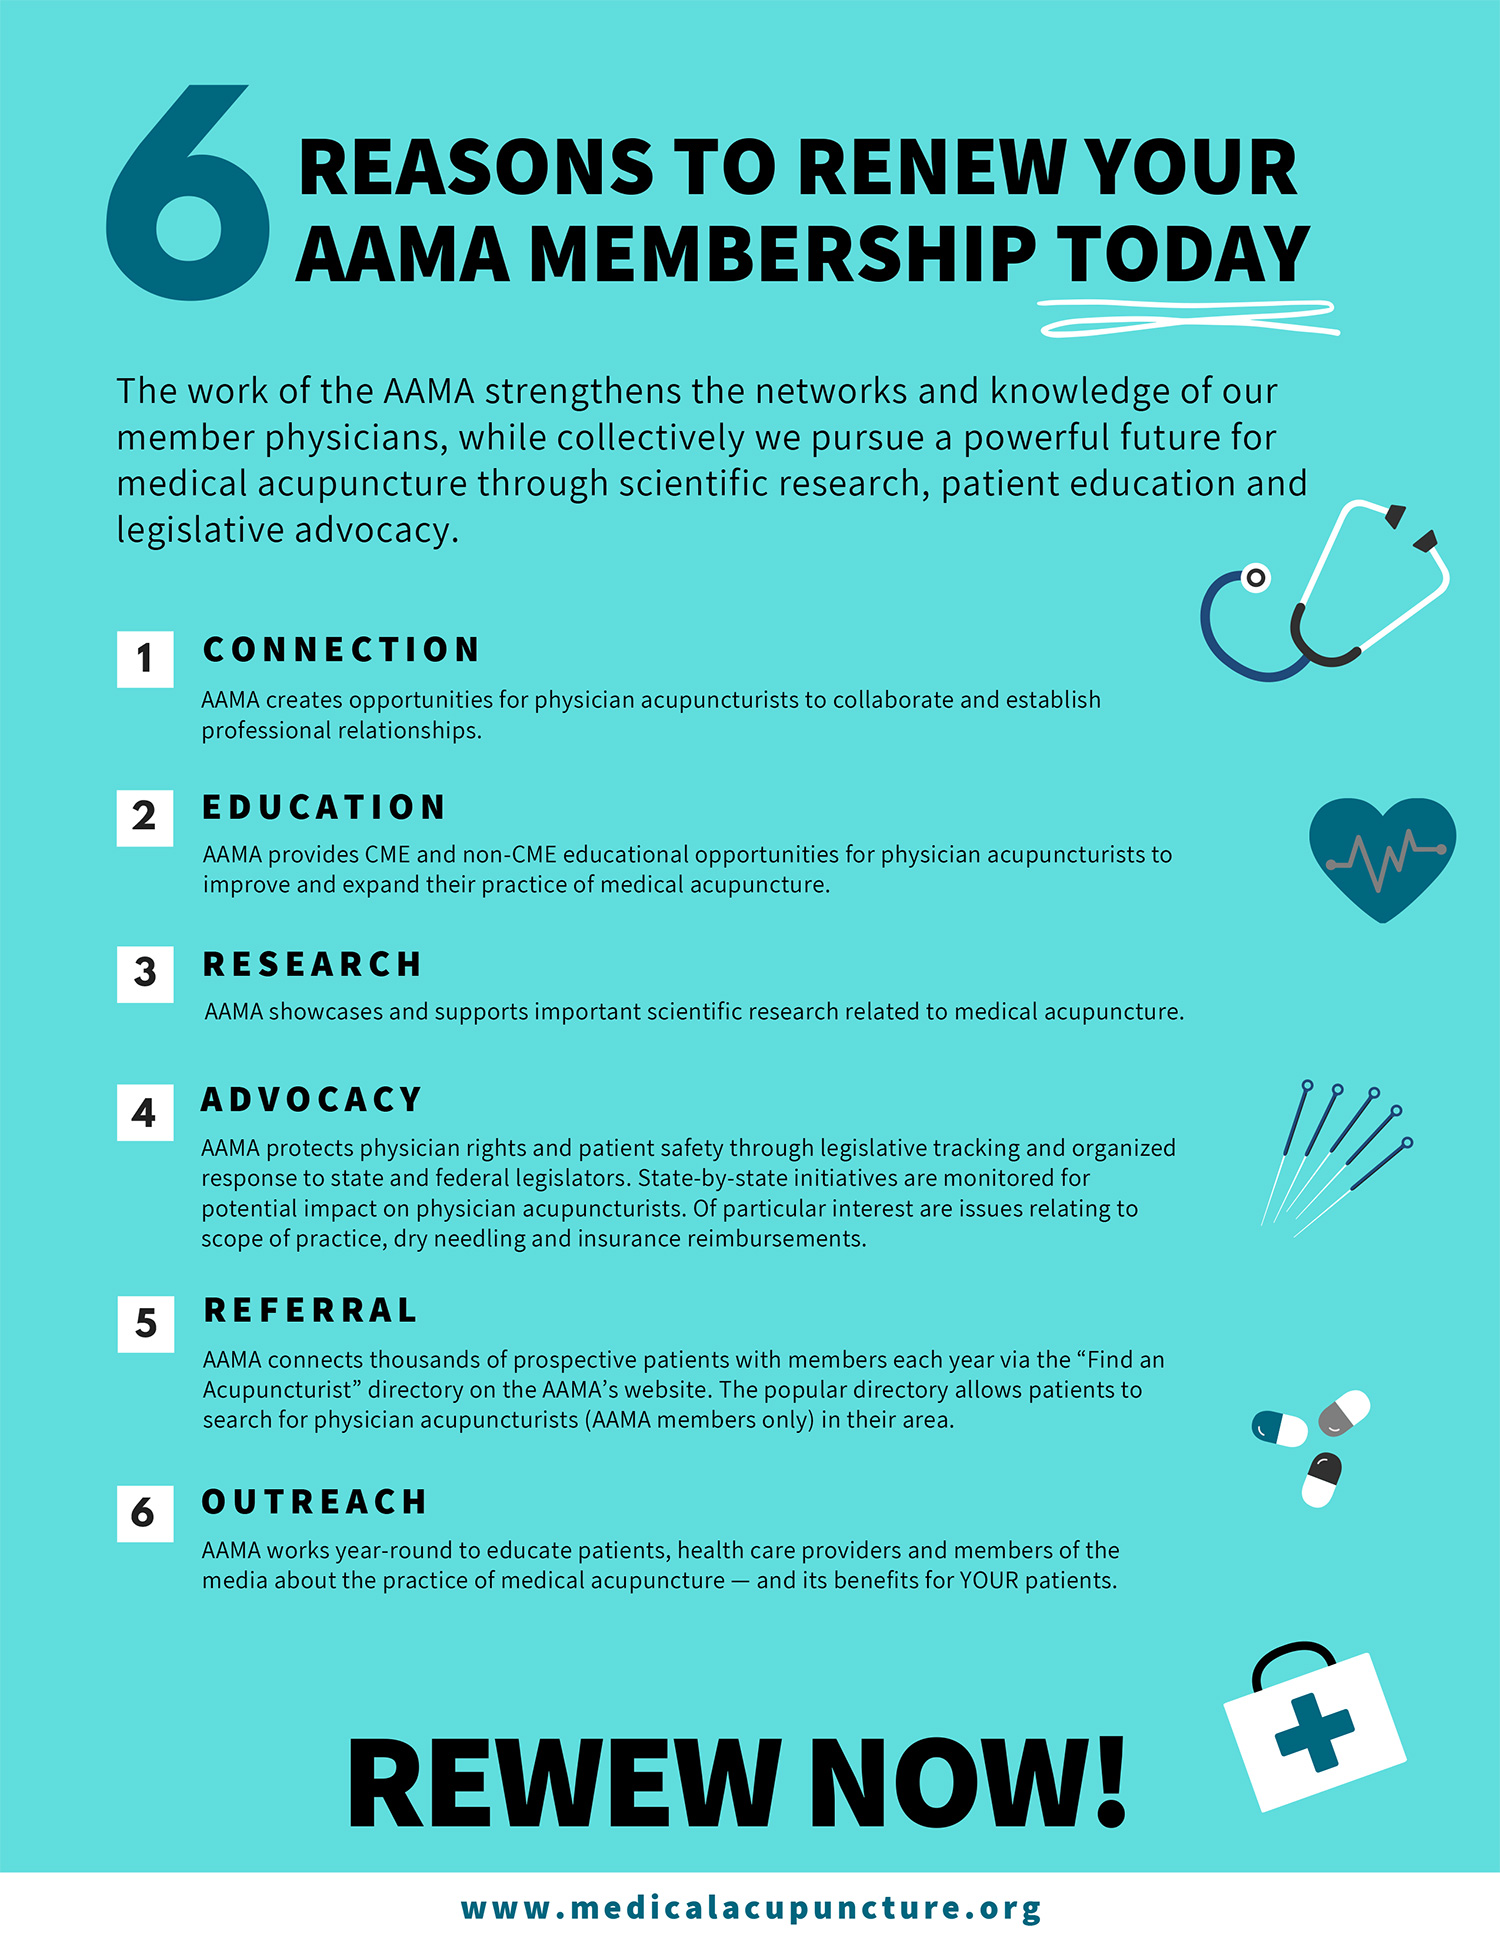 Reasons to renew your AAMA membership